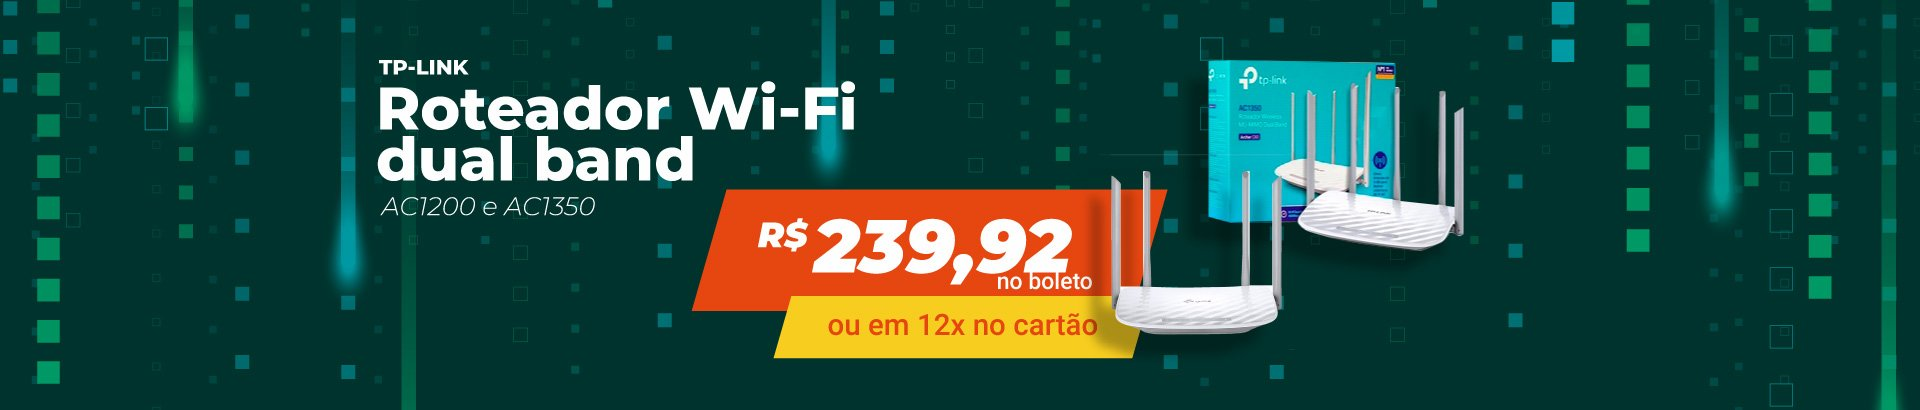 Roteadores TP-Link Dual Band